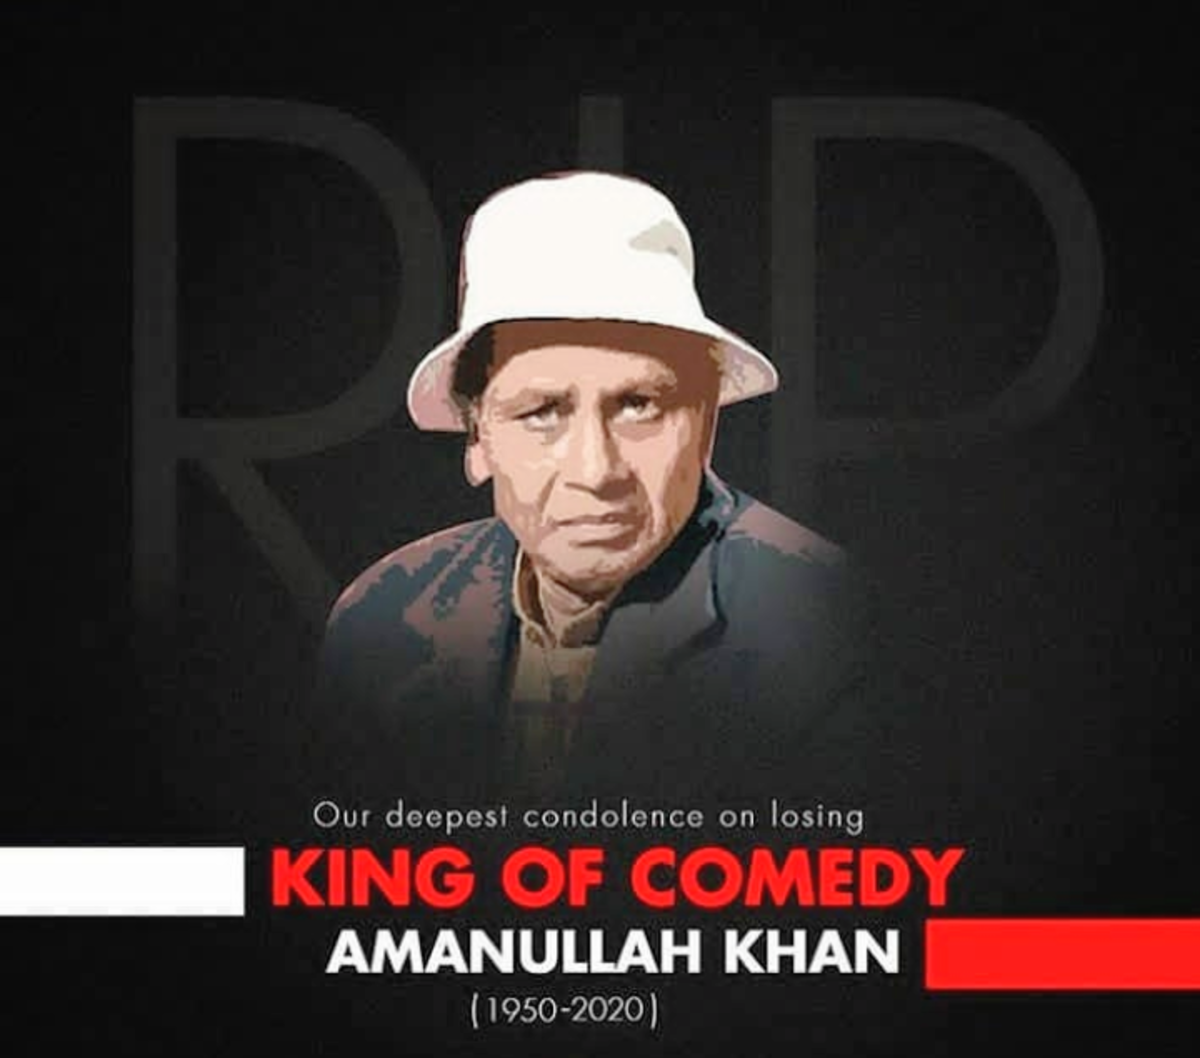 tribute-to-king-of-comedy-amanullah-khan